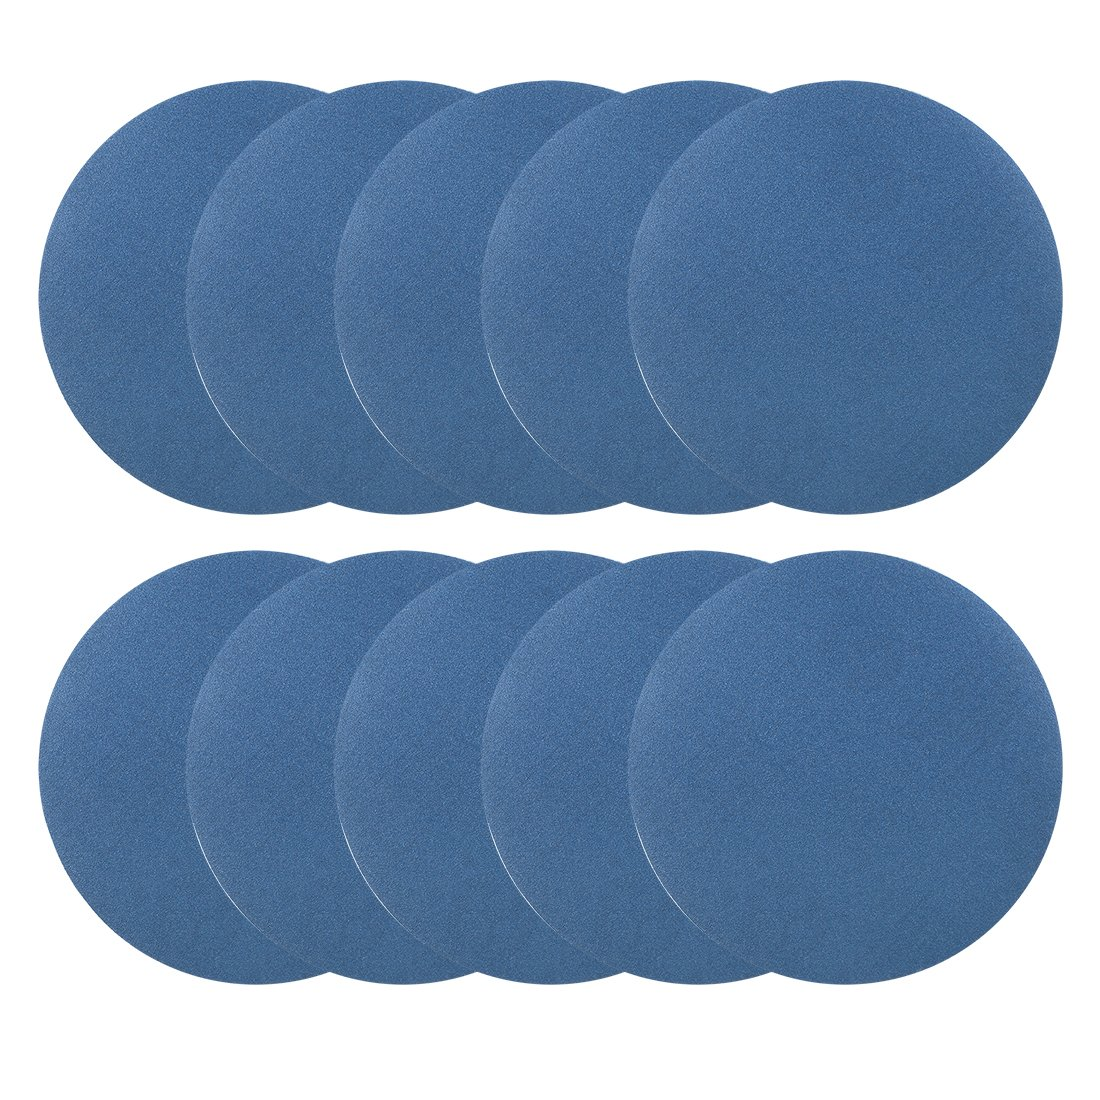 uxcell 3inch Dia 1000 Grit Sanding Disc Flocking Sandpaper 50pcs for Oscillating Tool a16031000ux0901